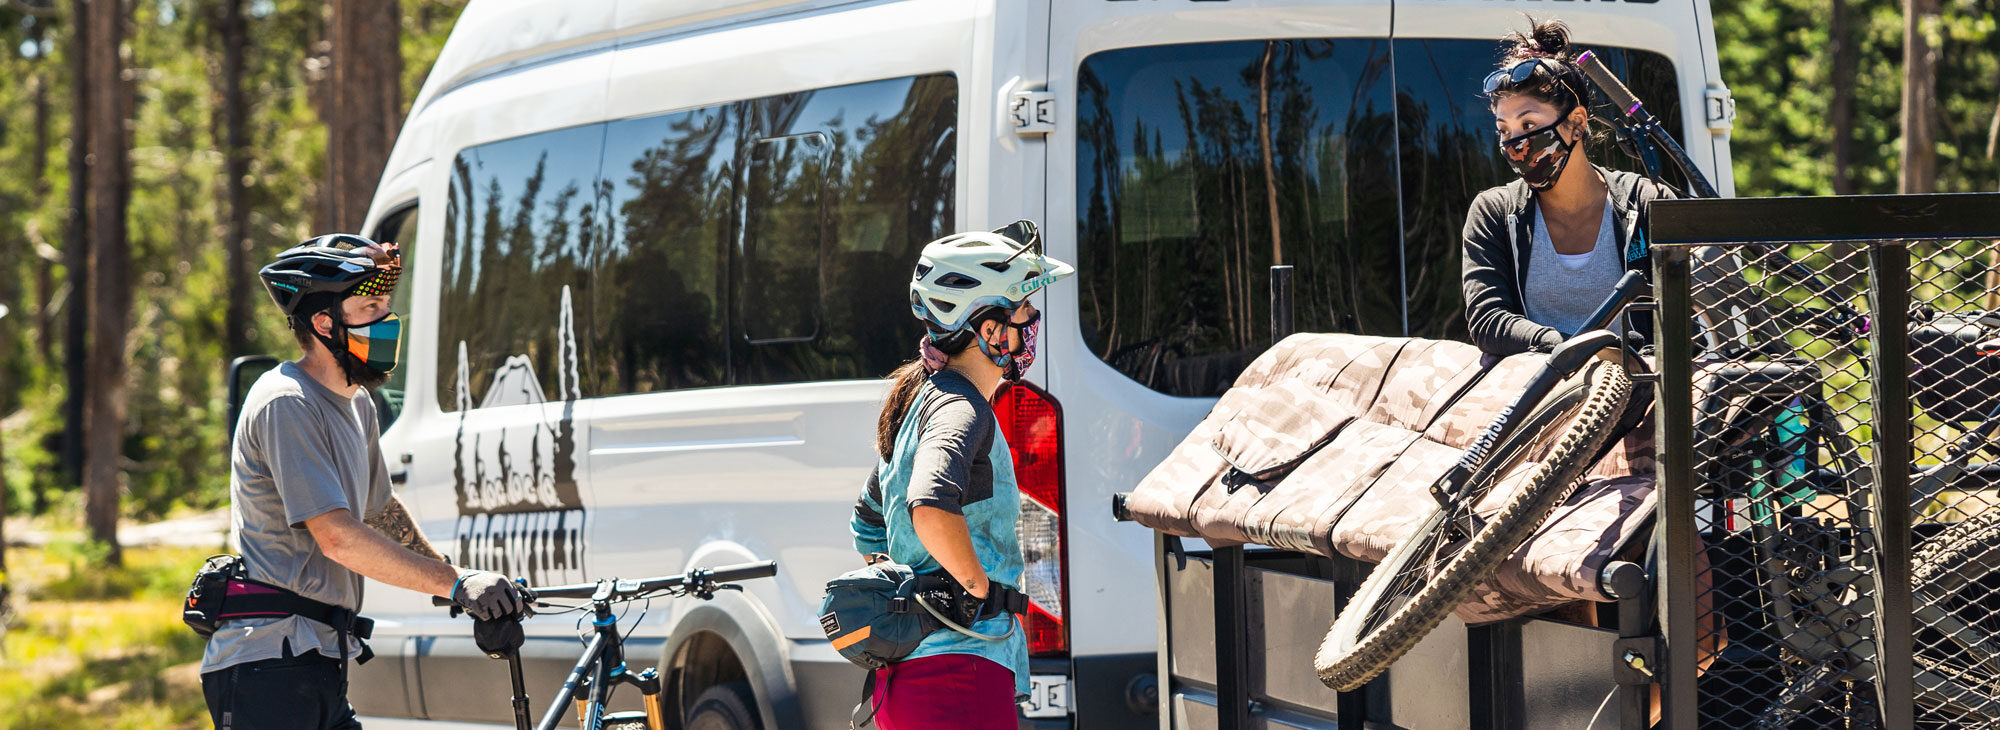 Cyclists unloading bikes from Cogwild tour van.